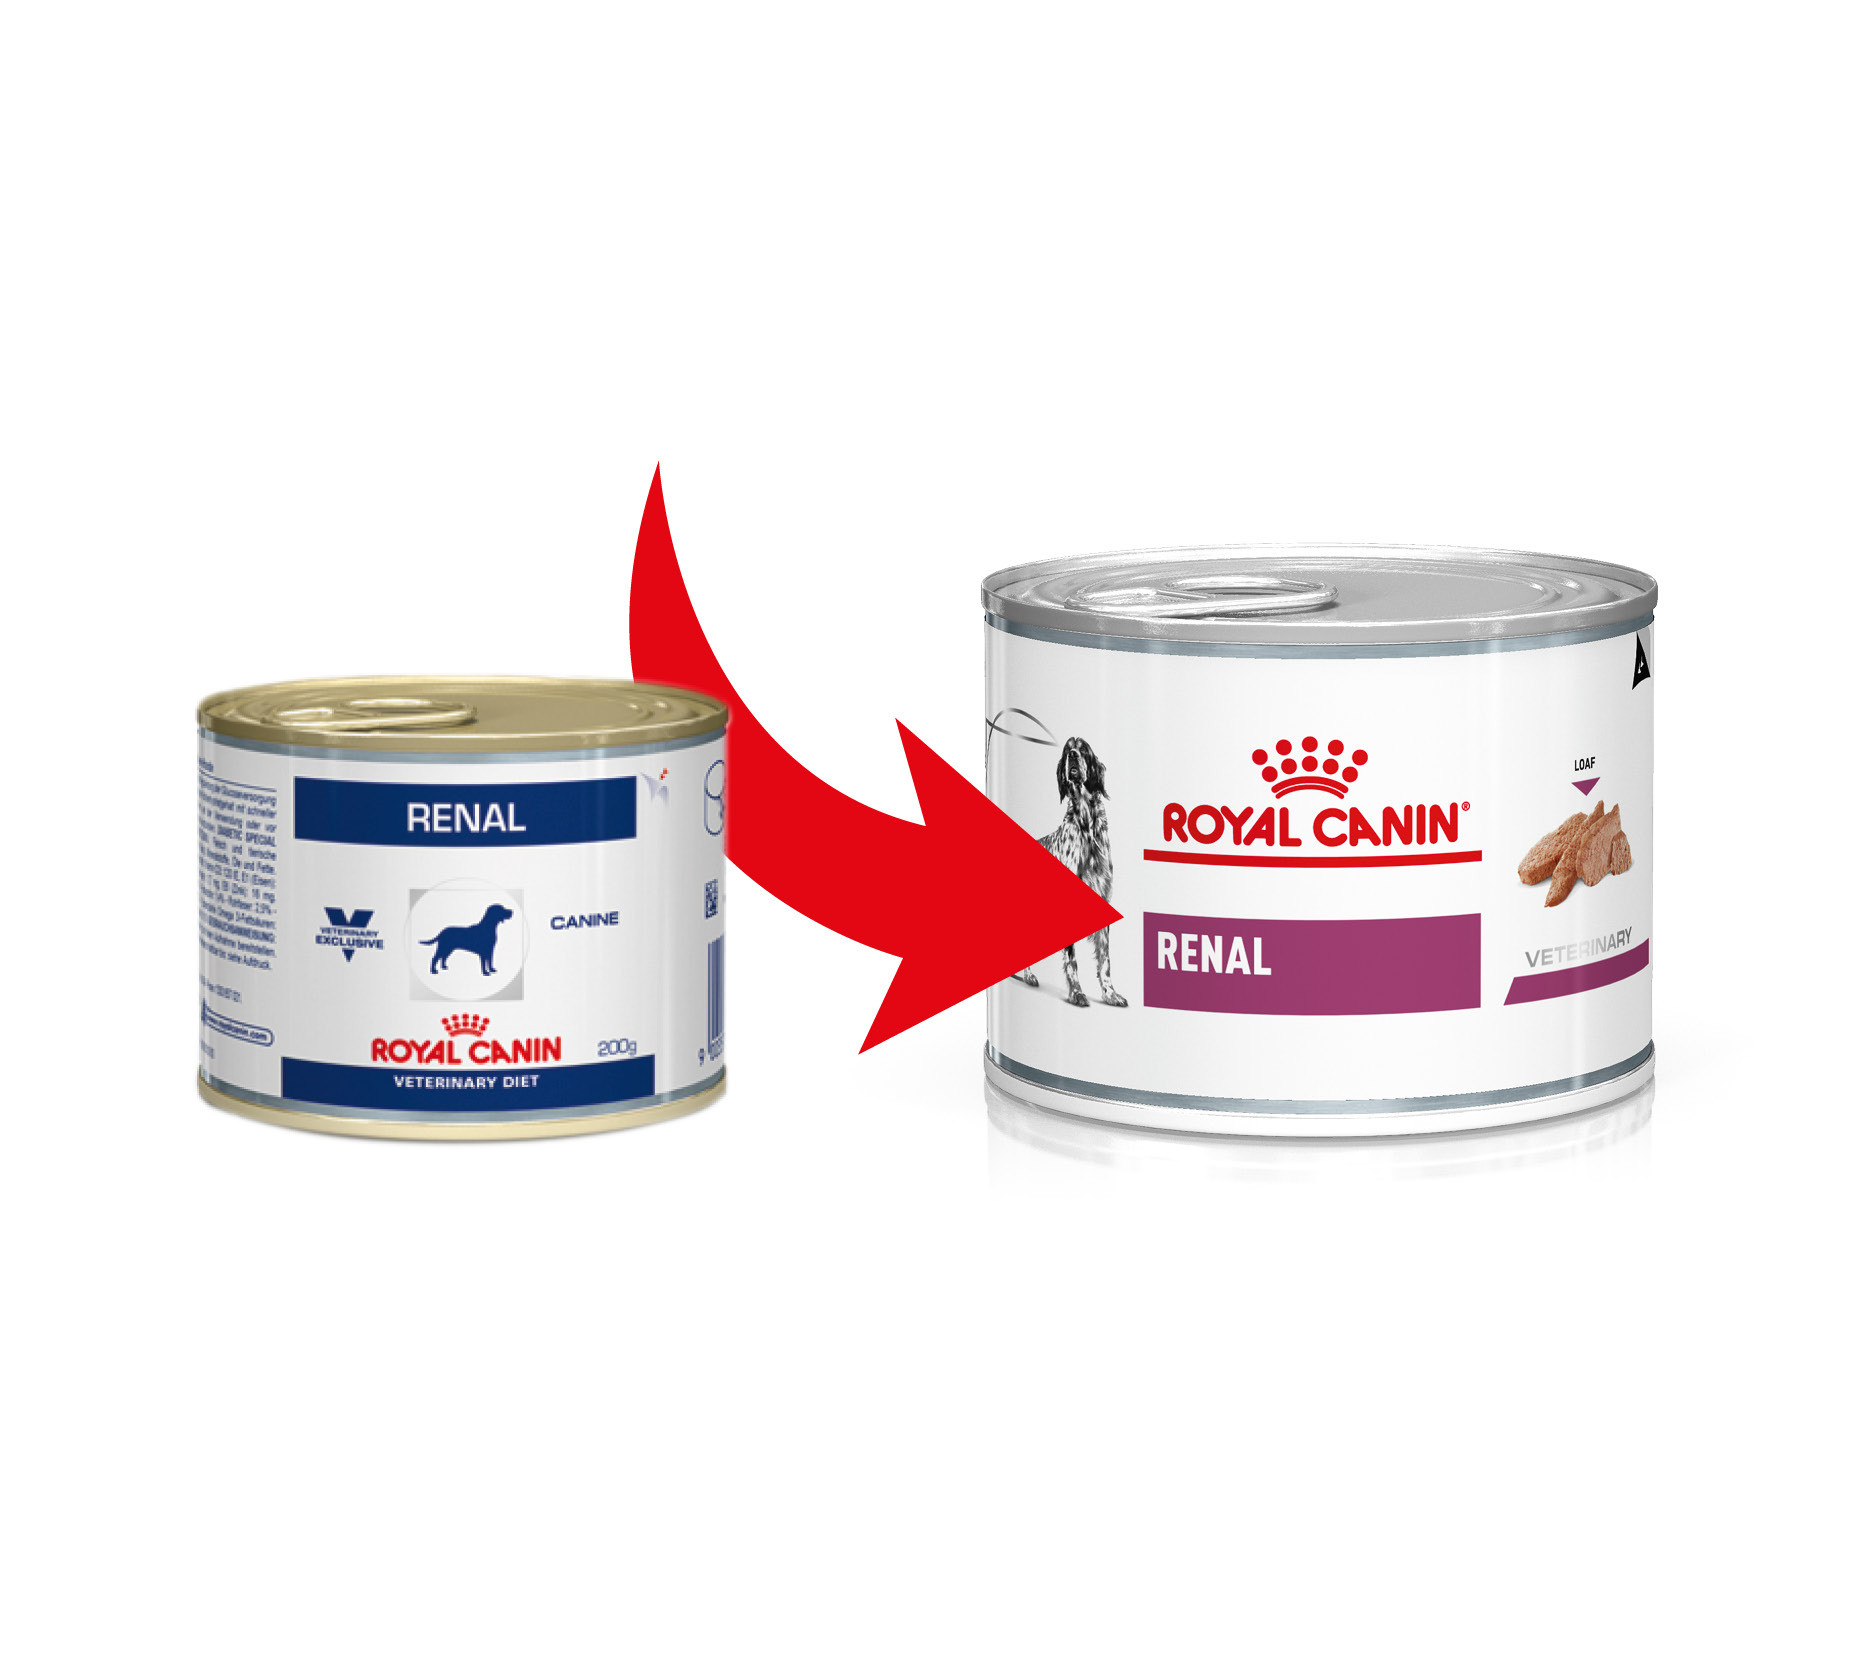 Royal Canin Renal (in scatola) per cane 200 g